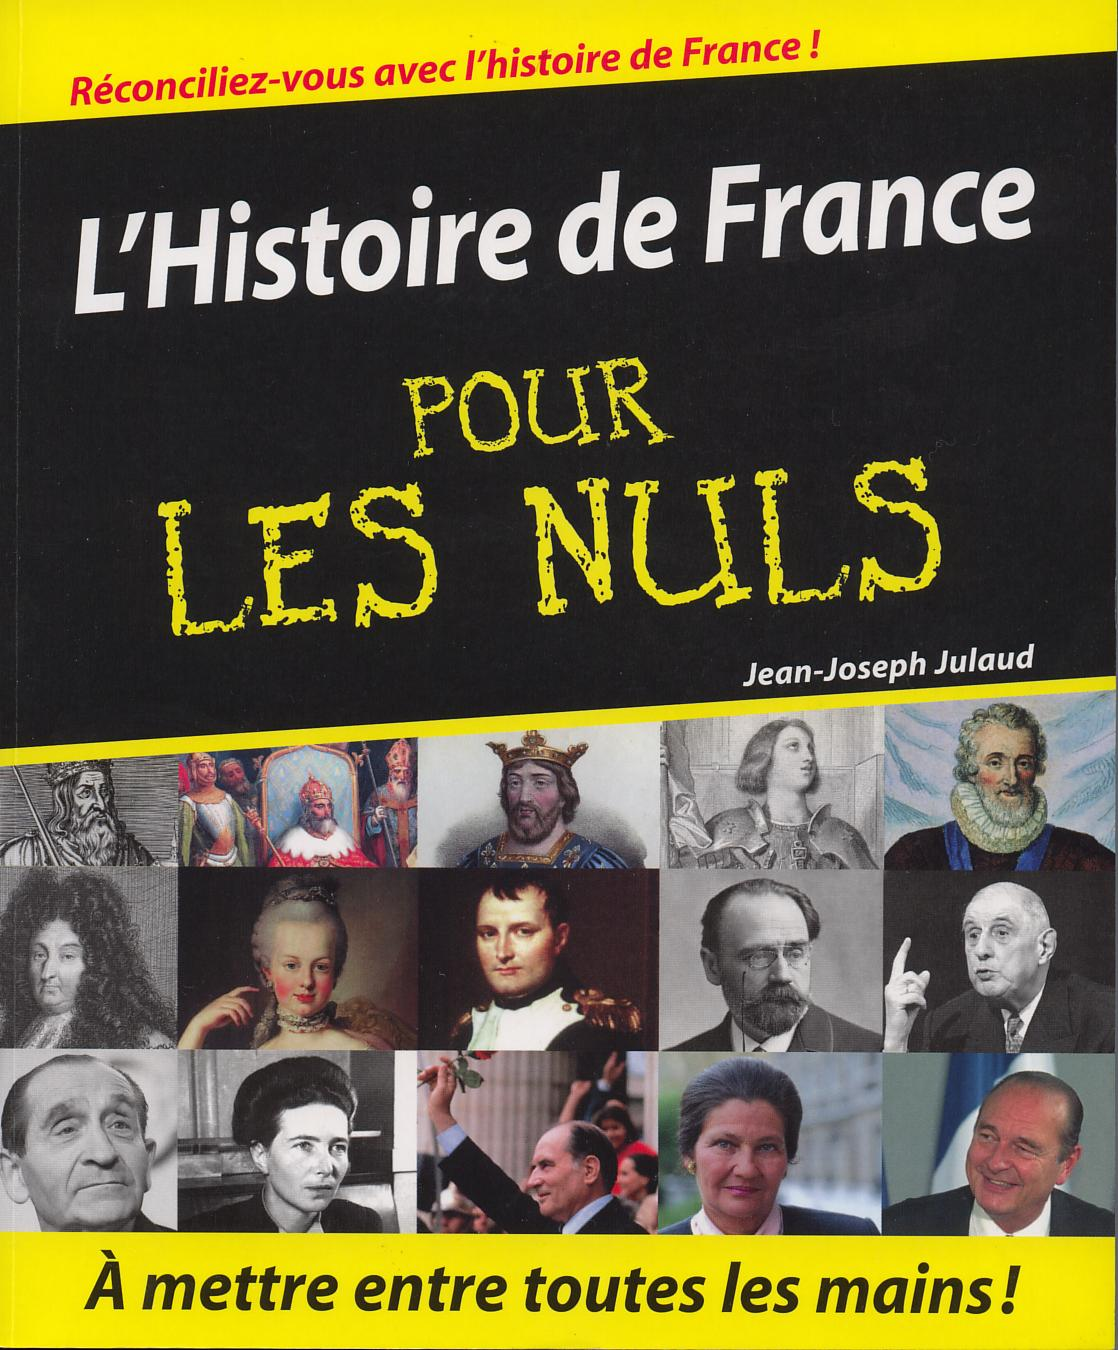 nuls - Pour les nuls - Page 3 Histoiredefrancepourlesnuls